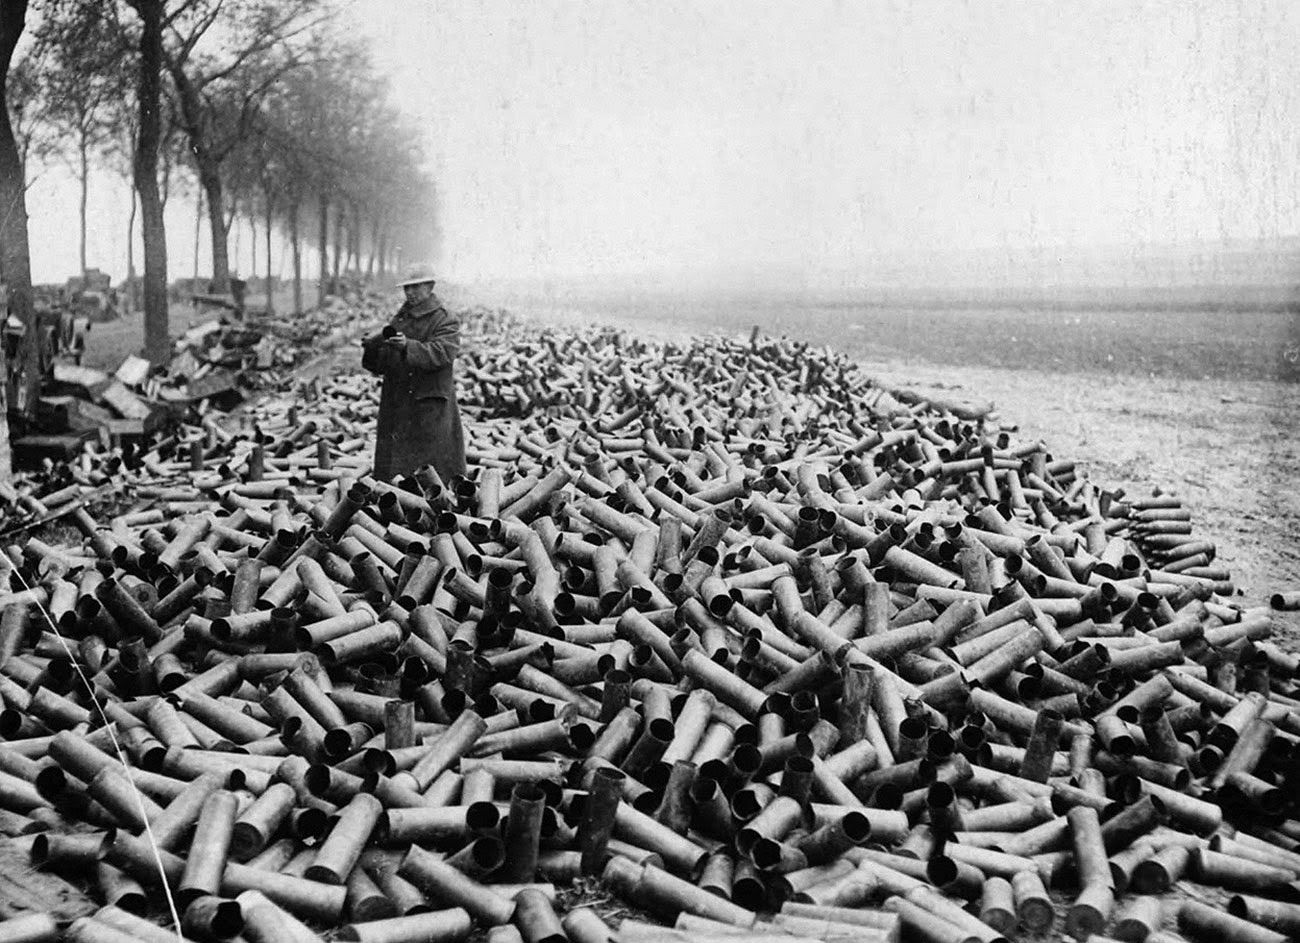 Image result for piles of shell cases in ww1